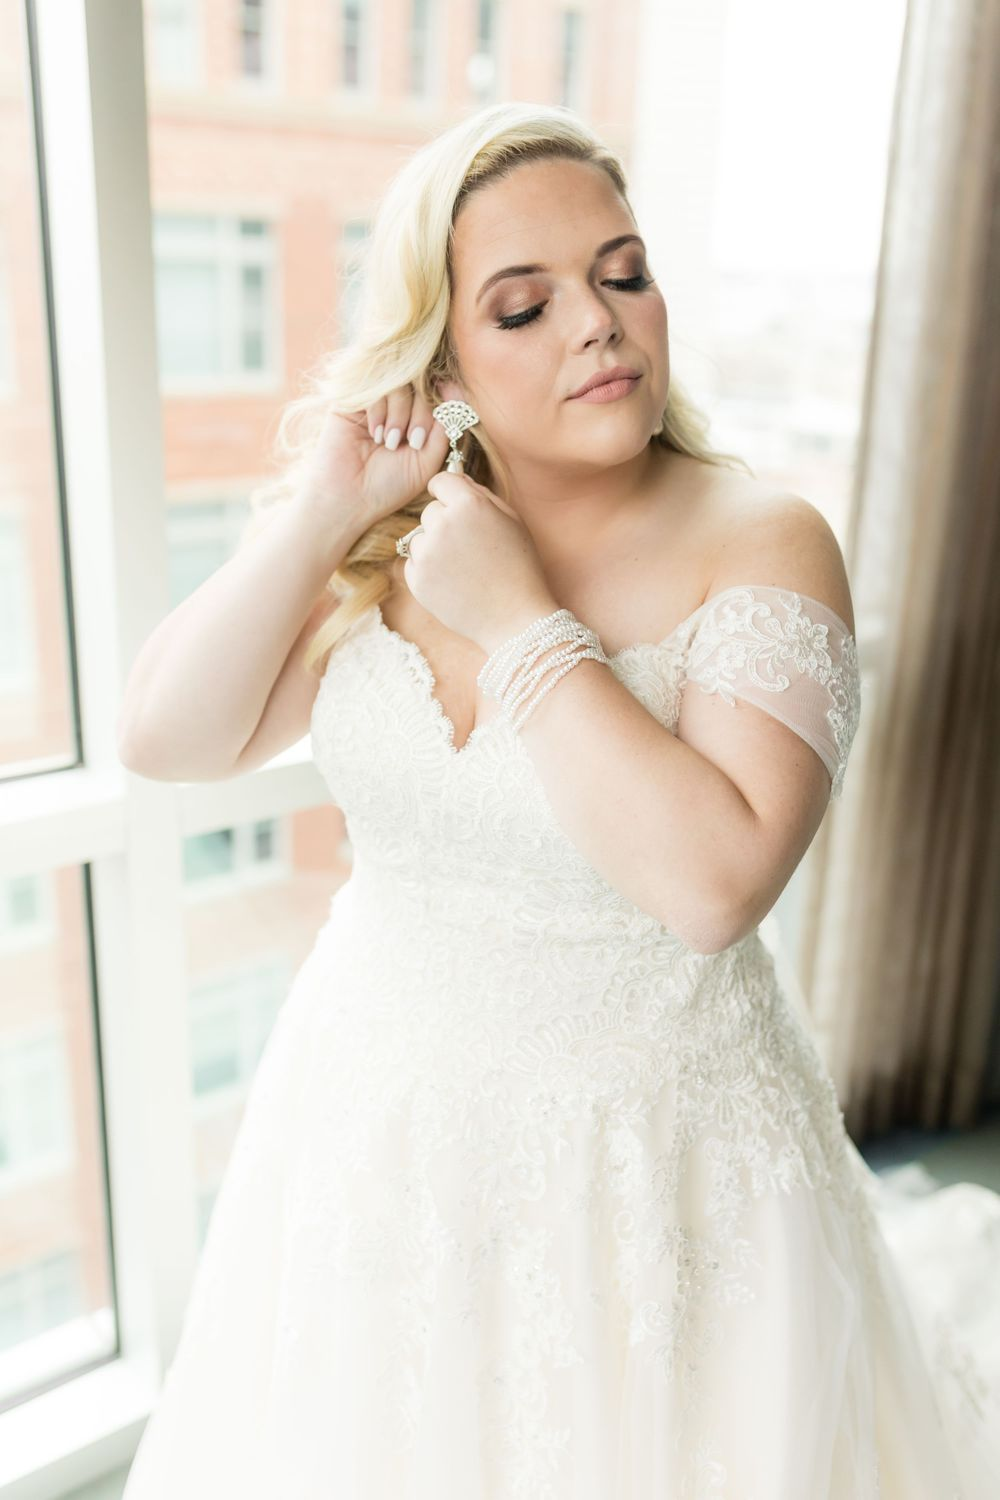 Bride getting ready at Aloft Hotel in Fort Worth.